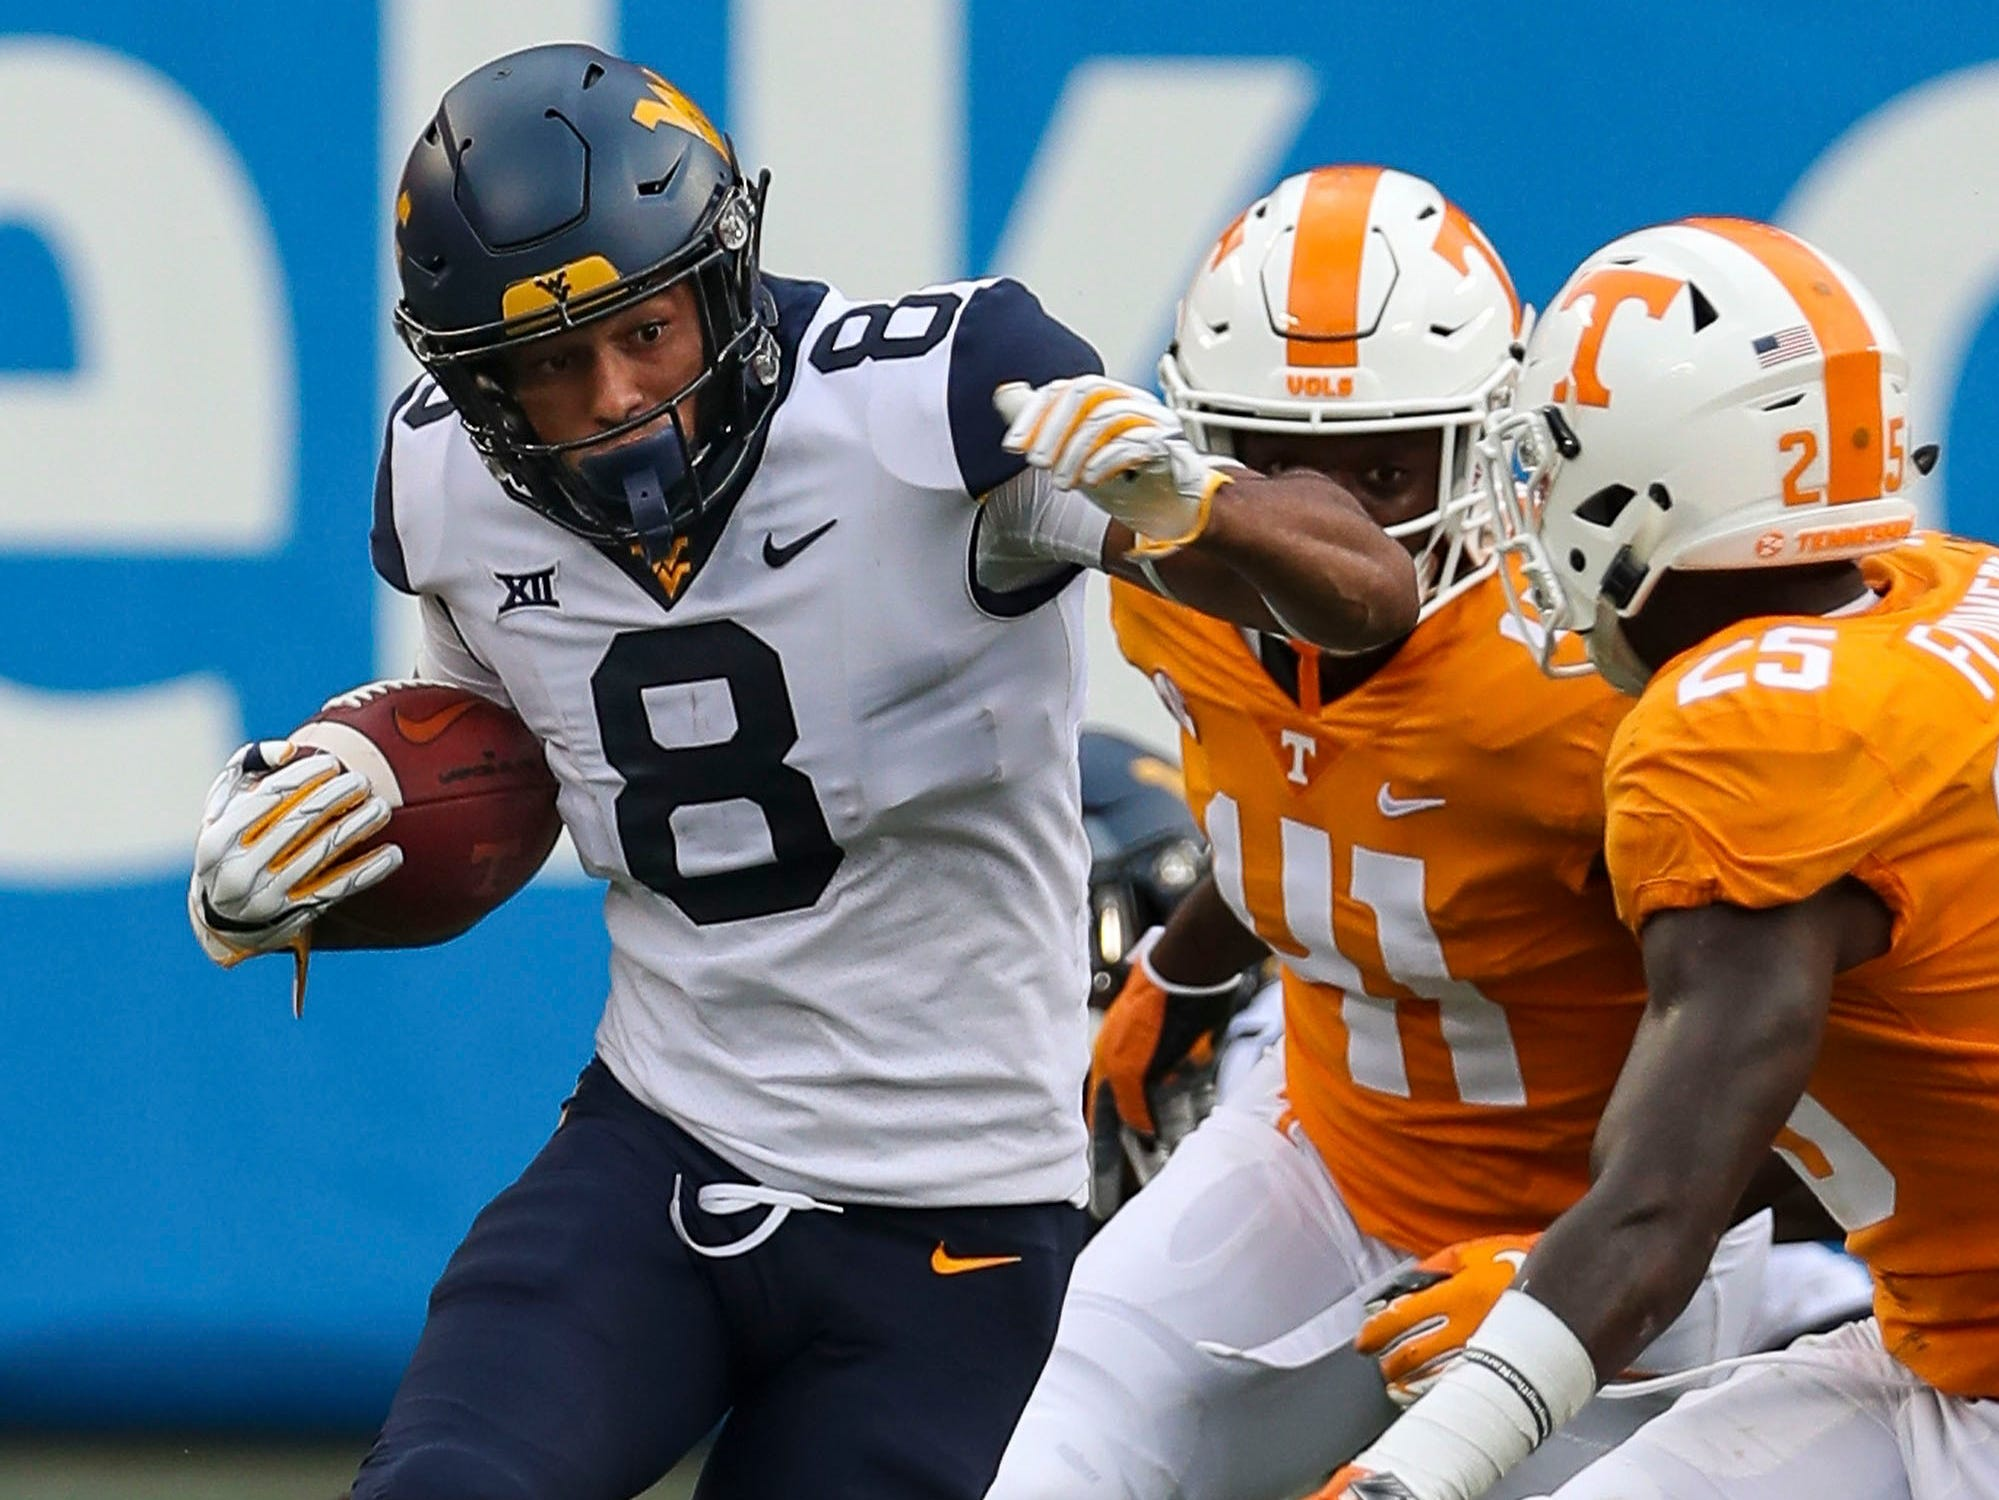 Sep 1, 2018; Charlotte, NC, USA; West Virginia Mountaineers wide receiver Marcus Simms (8) tries to elude Tennessee Volunteers defensive back Trevon Flowers (25) and defensive back Kenneth George Jr. (41) during the second half at Bank of America Stadium.